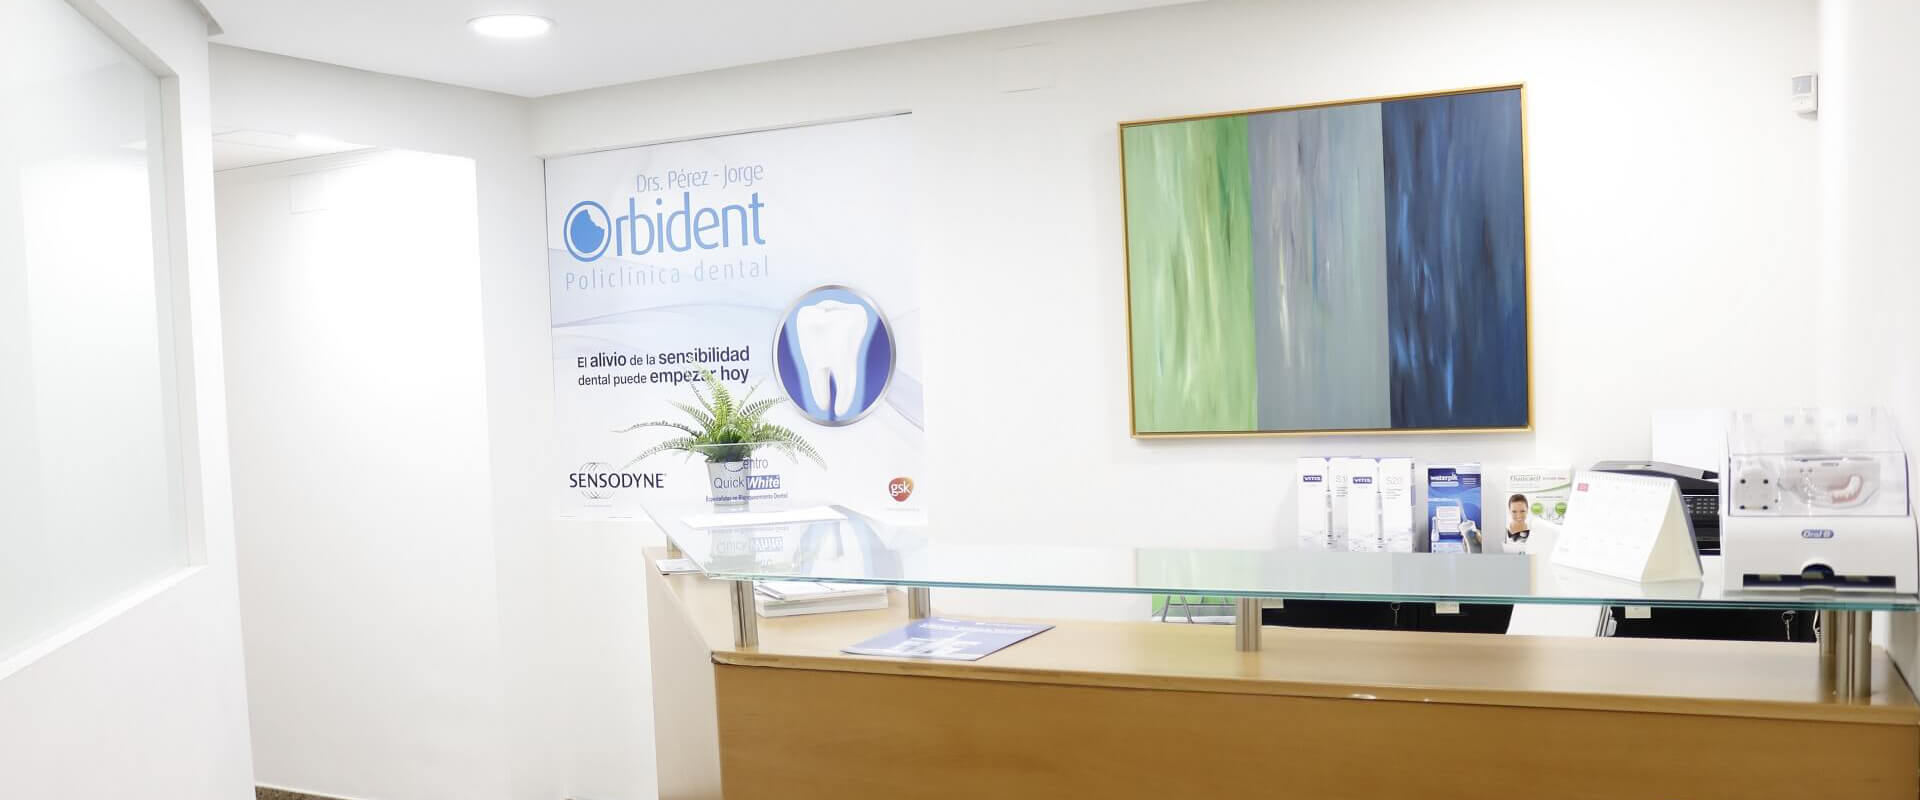 home_recepcion 1920x800 - clinica orbident